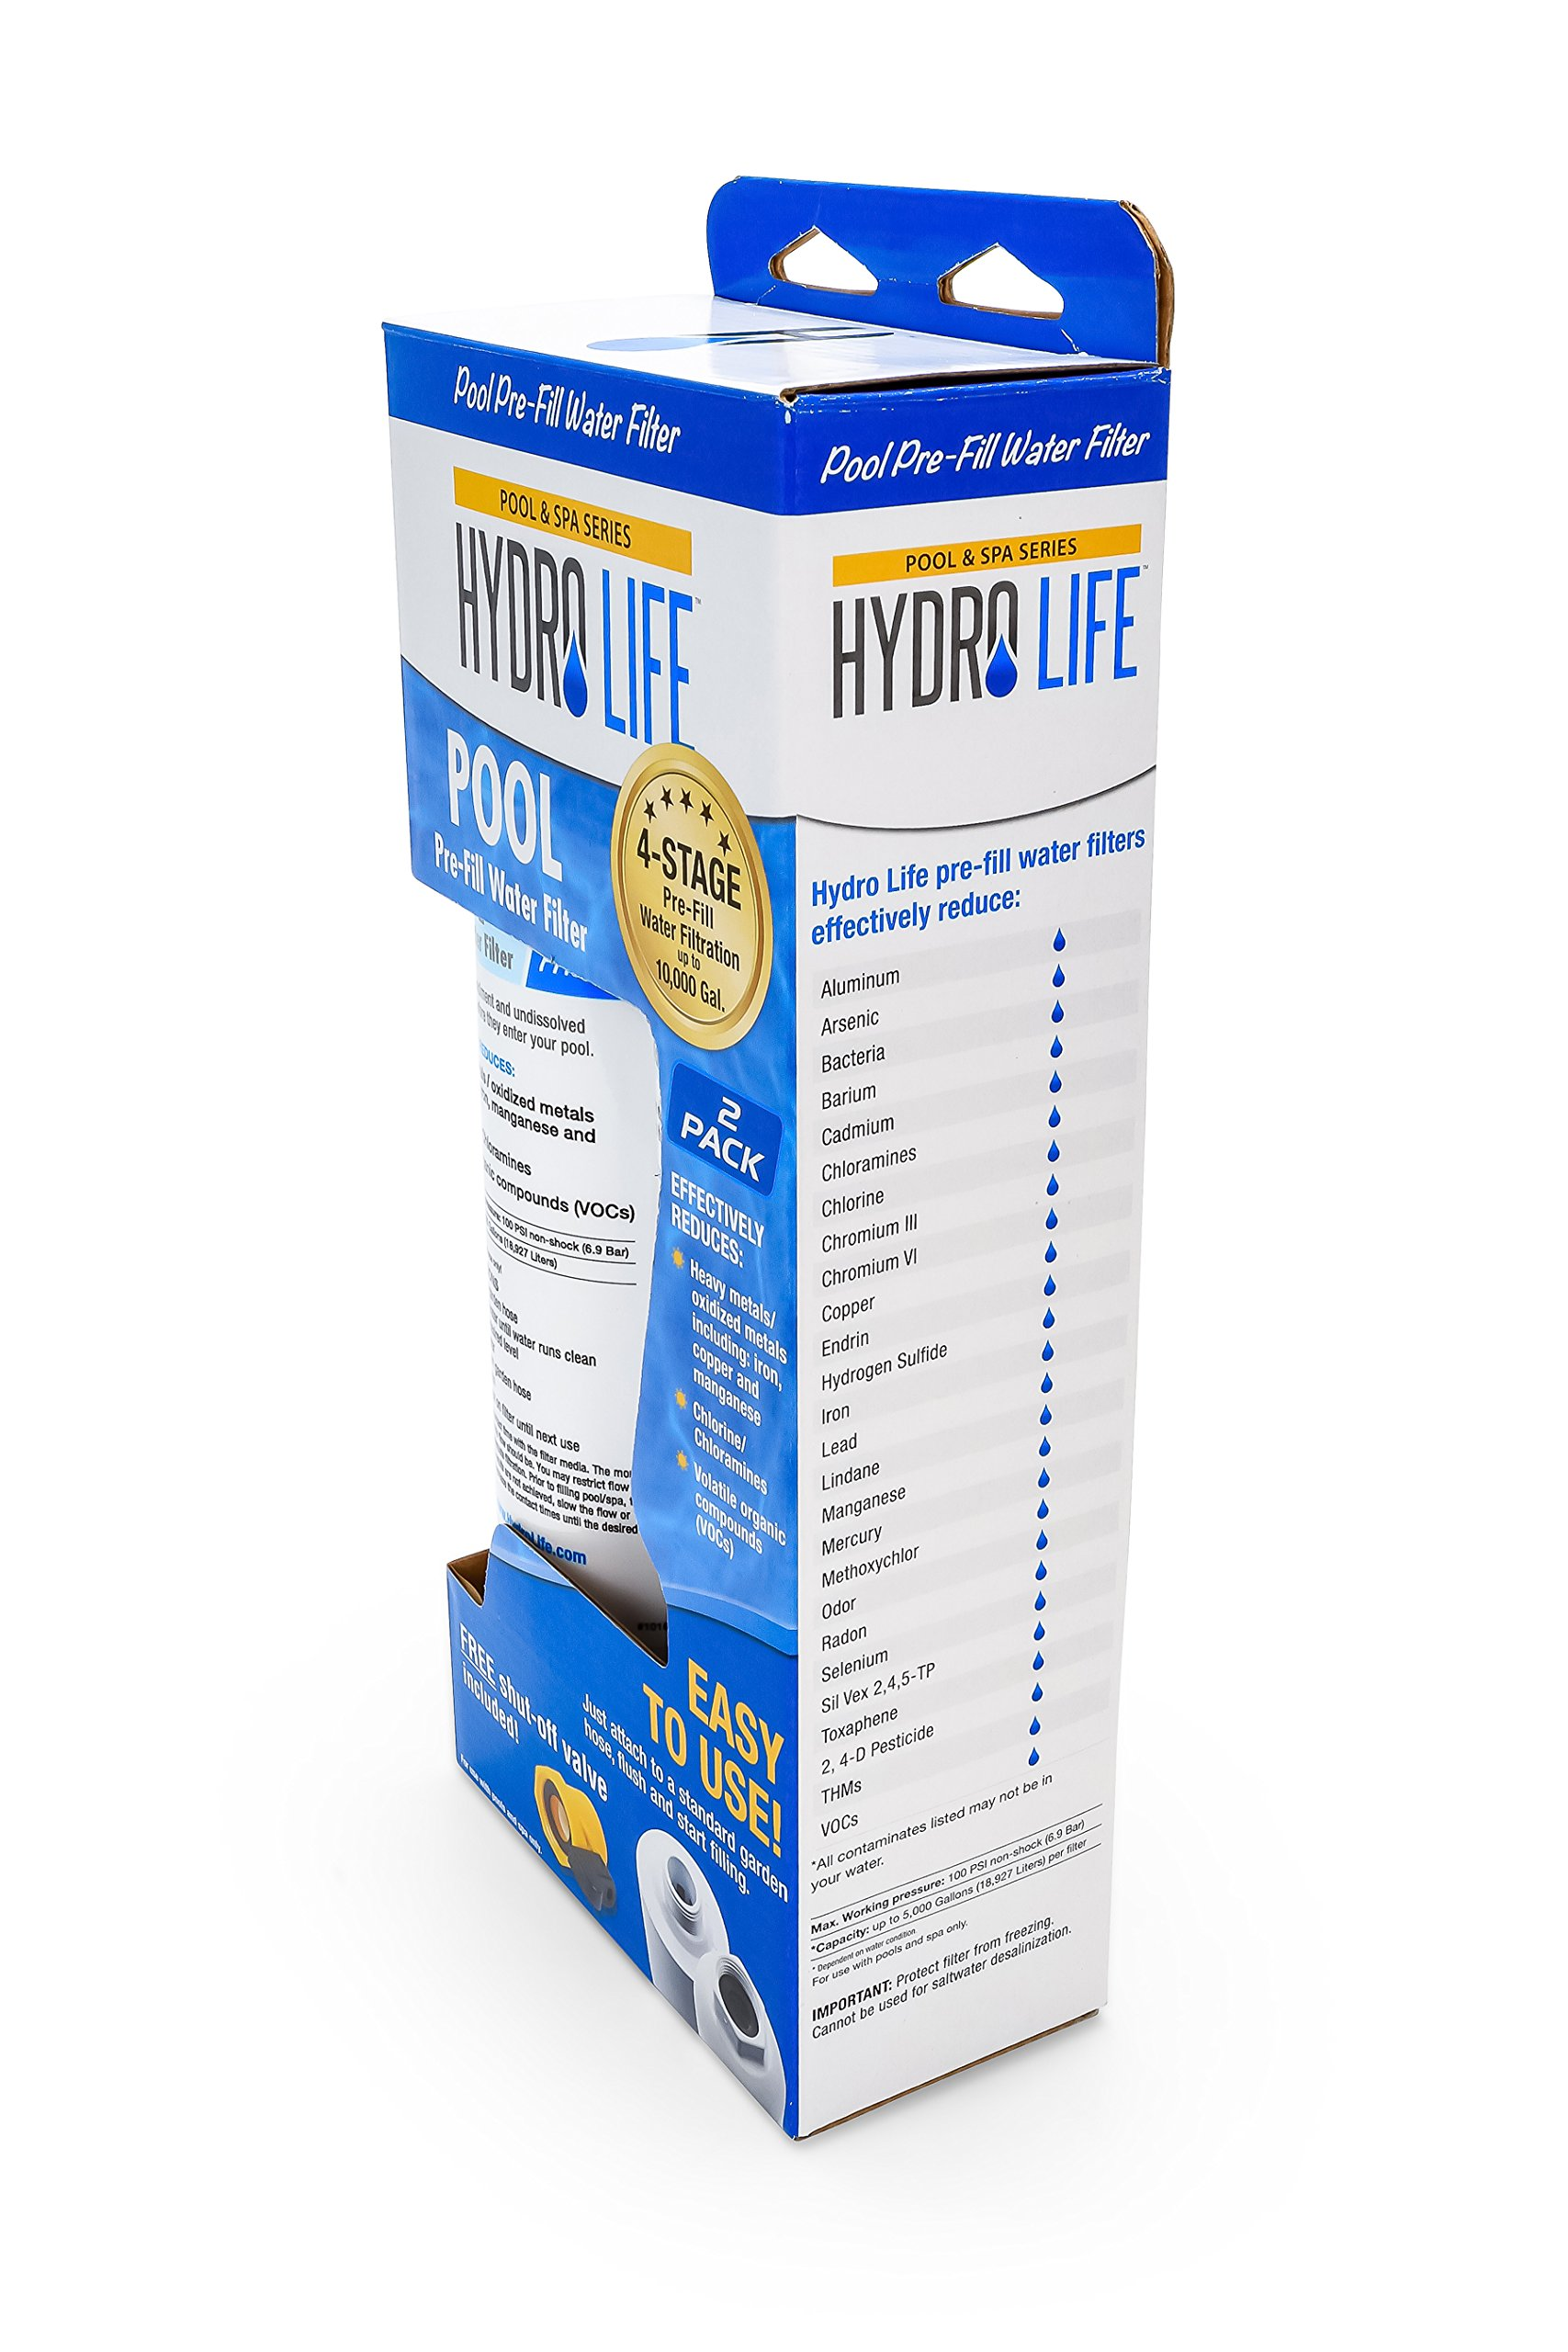 Hydro Life Pool Water Filter - Pack of 2 - Effectively Reduces Levels of Heavy Metals, Chlorine, Chloramines and Volatile Organic Compounds to Make Balancing Chemicals Easier, Model 52802 by Hydro Life (Image #6)